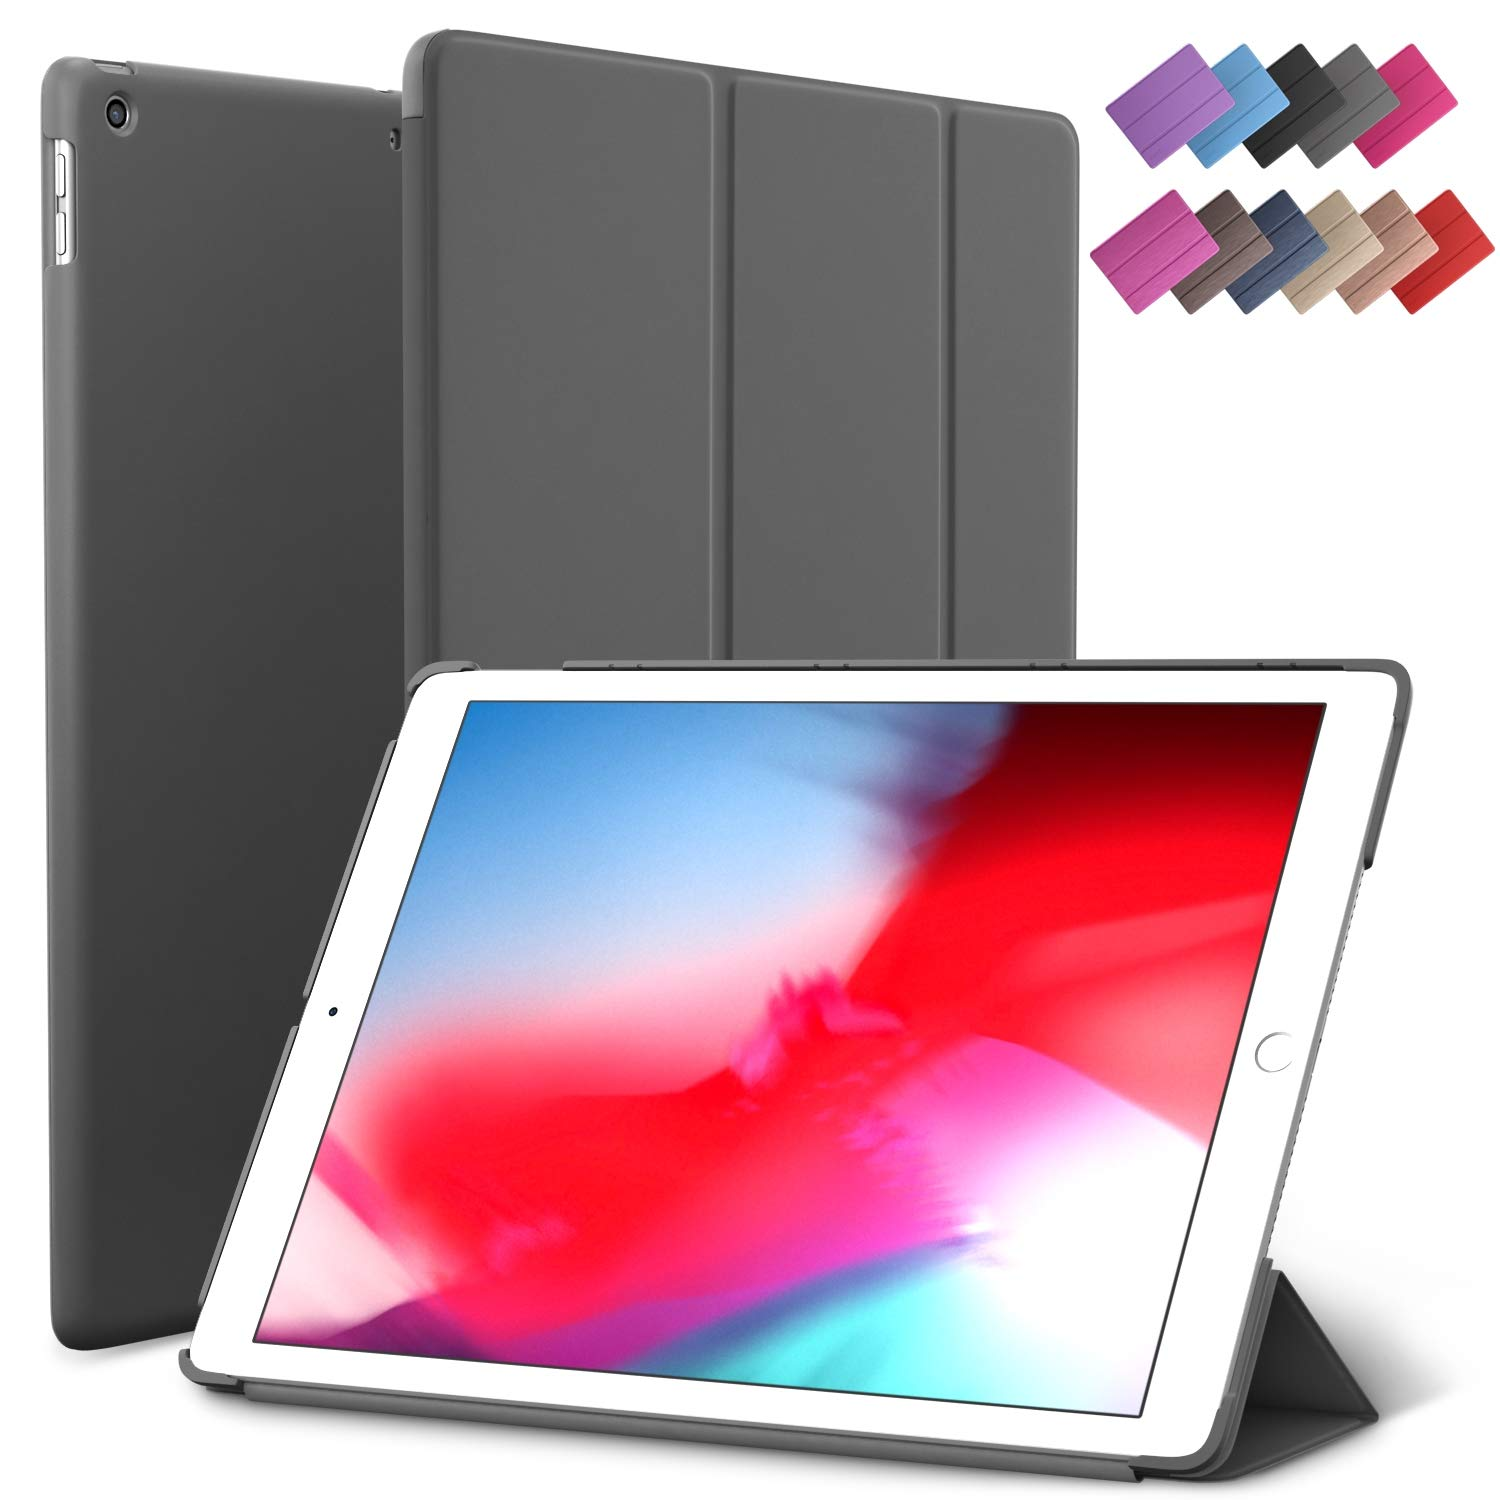 iPad Mini 5 case, ROARTZ Gray Slim Fit Smart Rubber Coated Folio Case Hard Cover Light-Weight Wake/Sleep for Apple iPad Mini 5th Generation 2019 Model A2133 A2124 A2126 7.9-inch Di